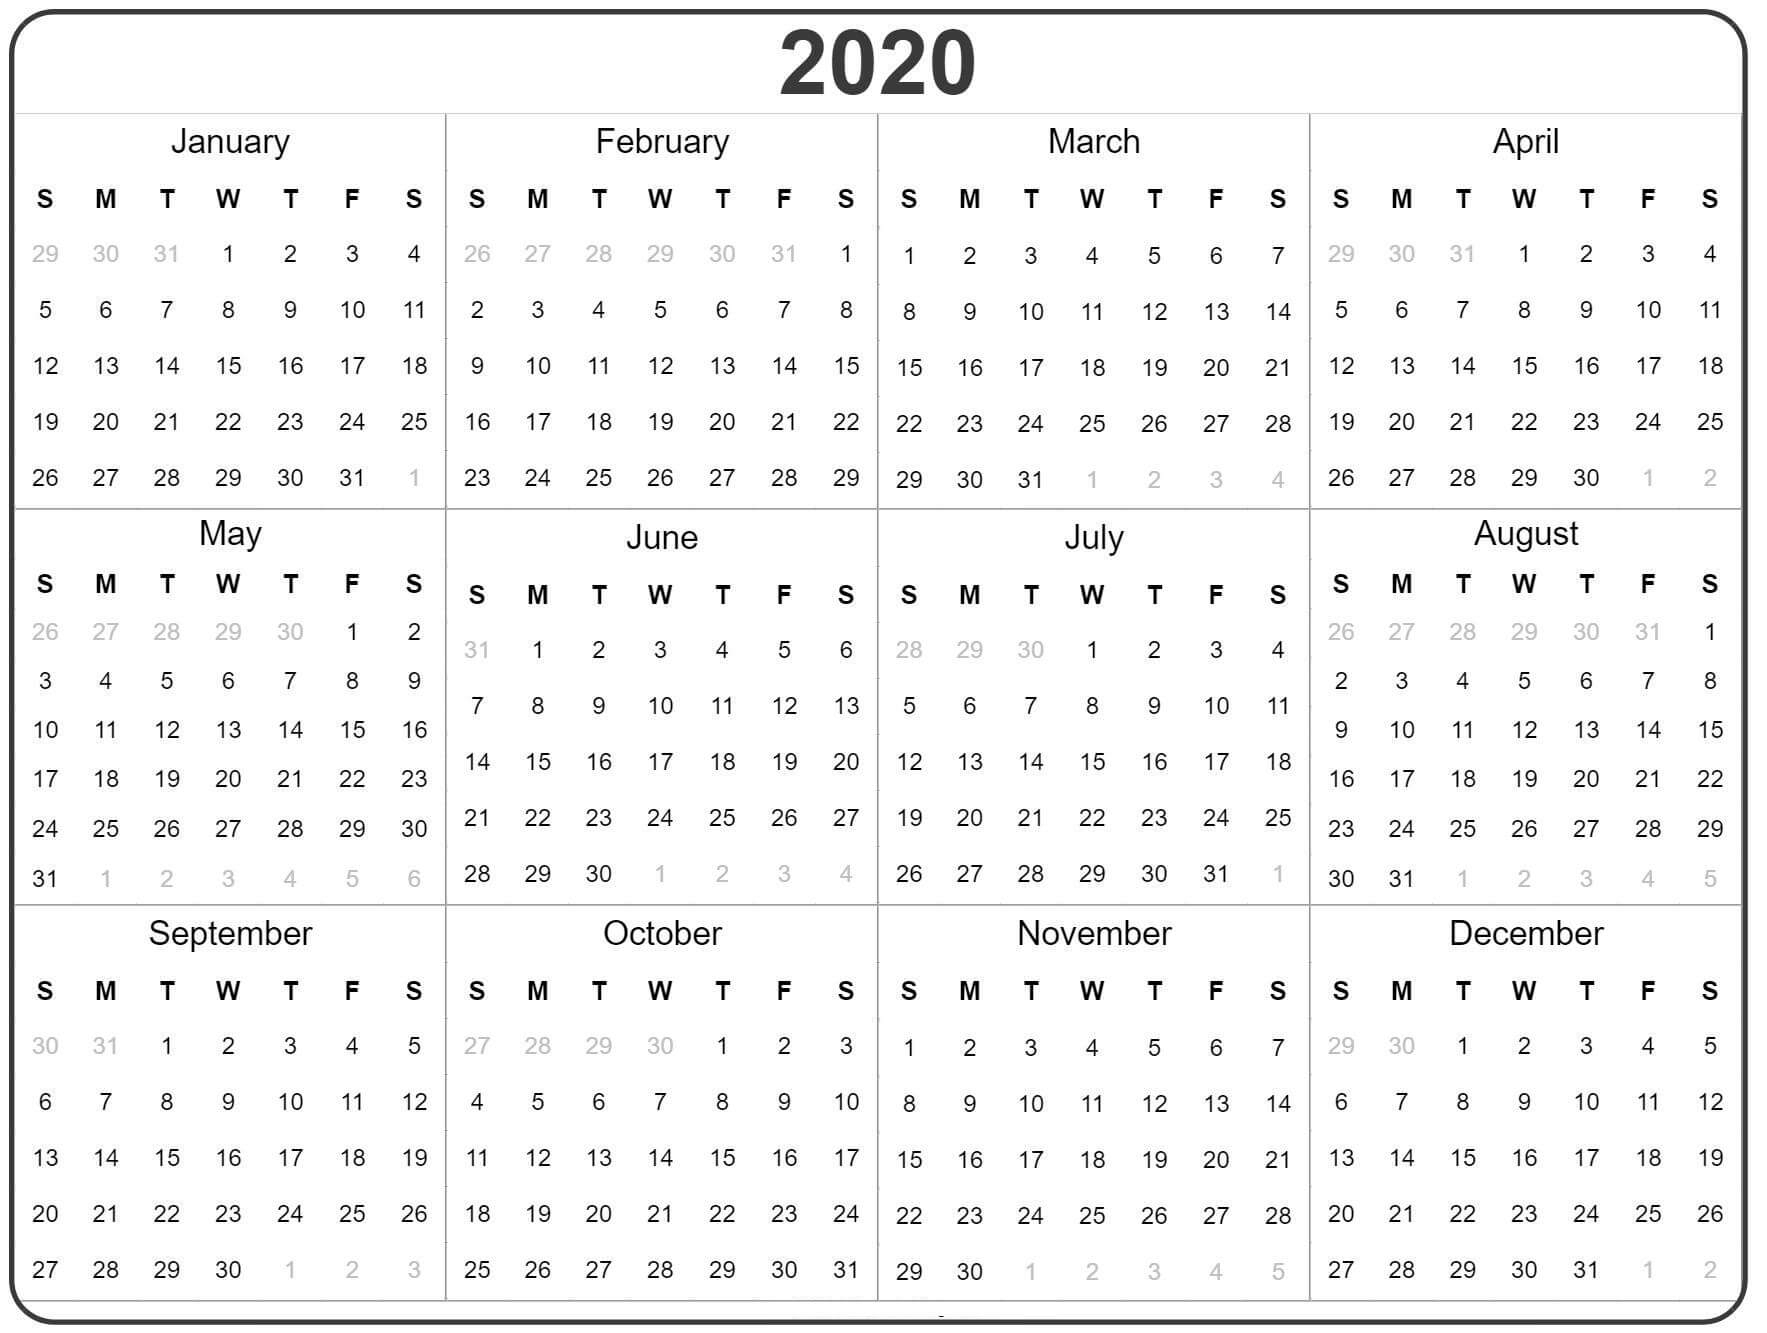 Free Yearly Calendar 2020 With Notes - 2019 Calendars For intended for 2020 Year At A Glance Printable